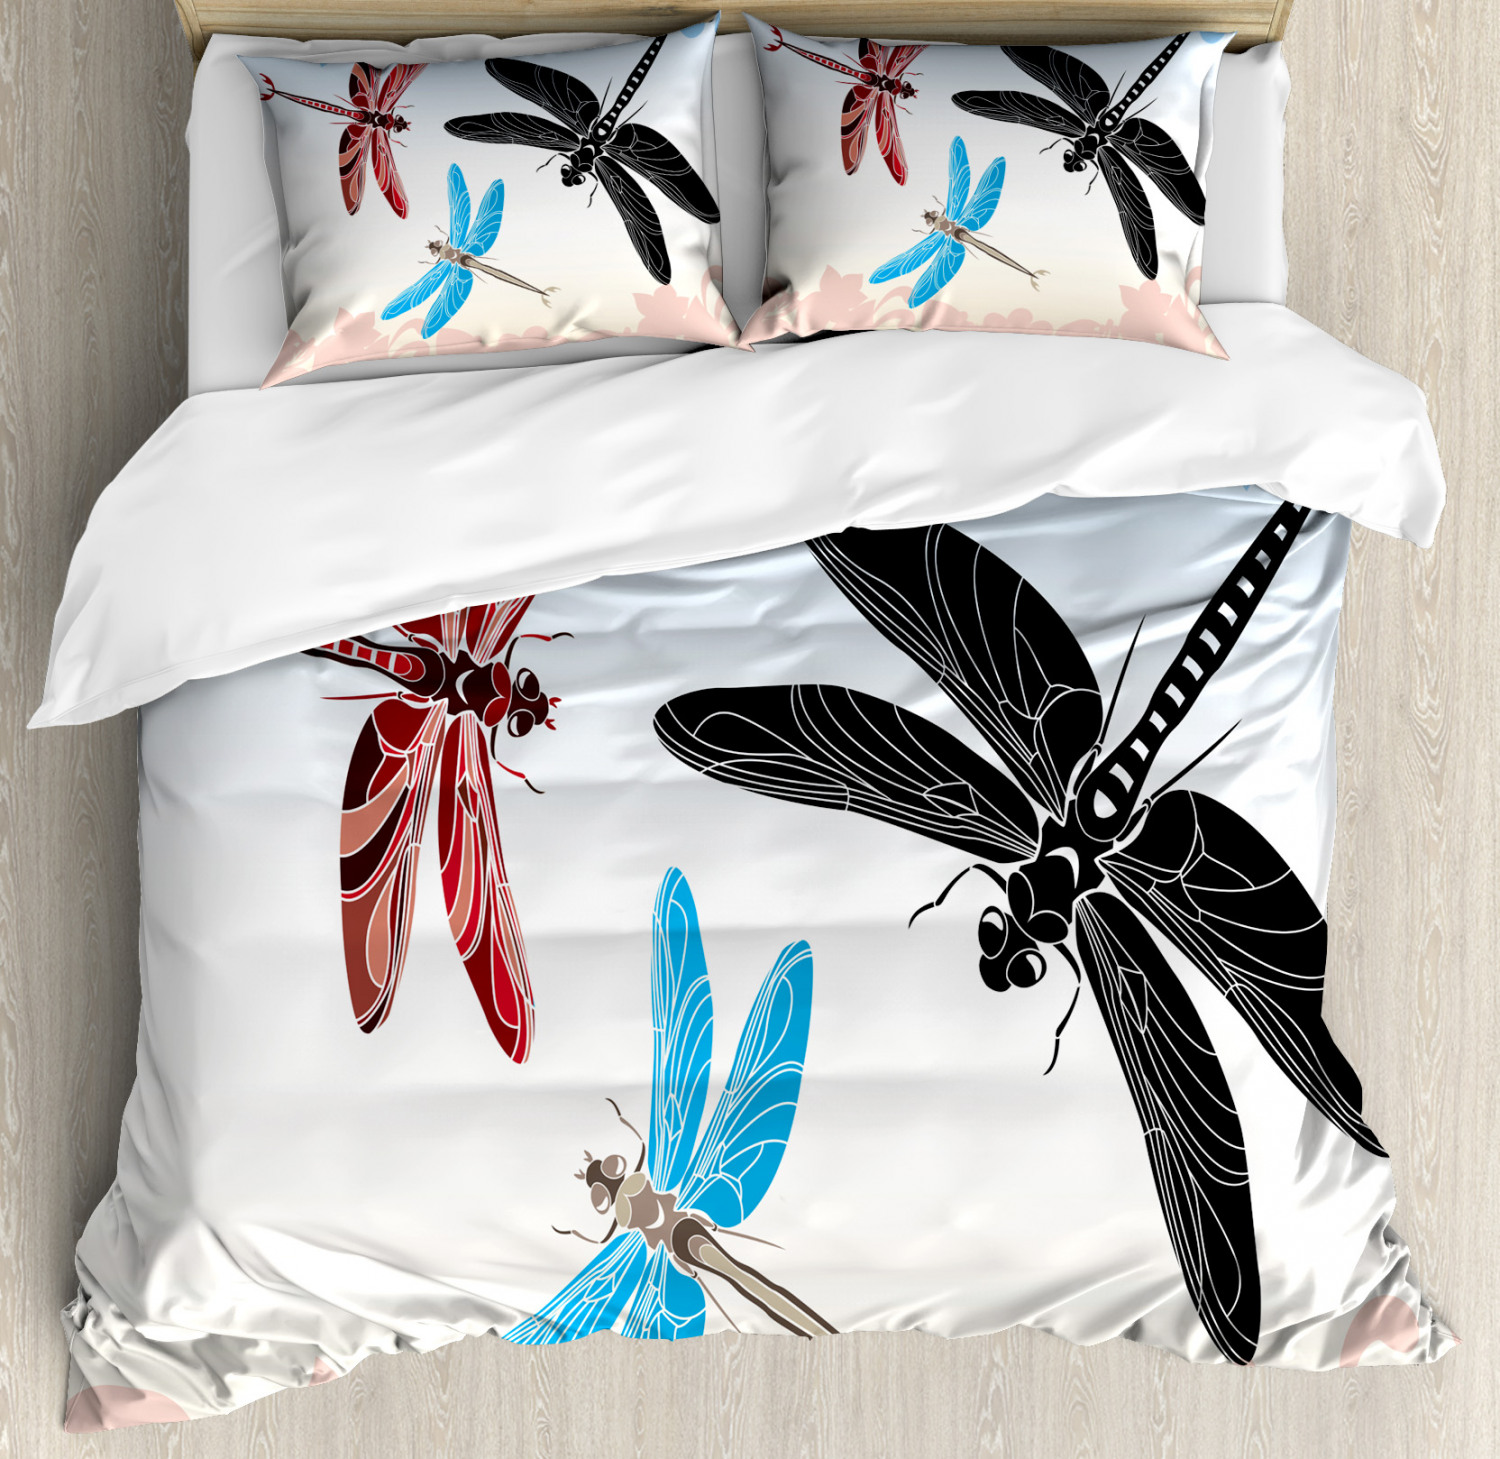 Dragonfly Duvet Cover Set with Pillow Shams Exotic Animal Wing Print